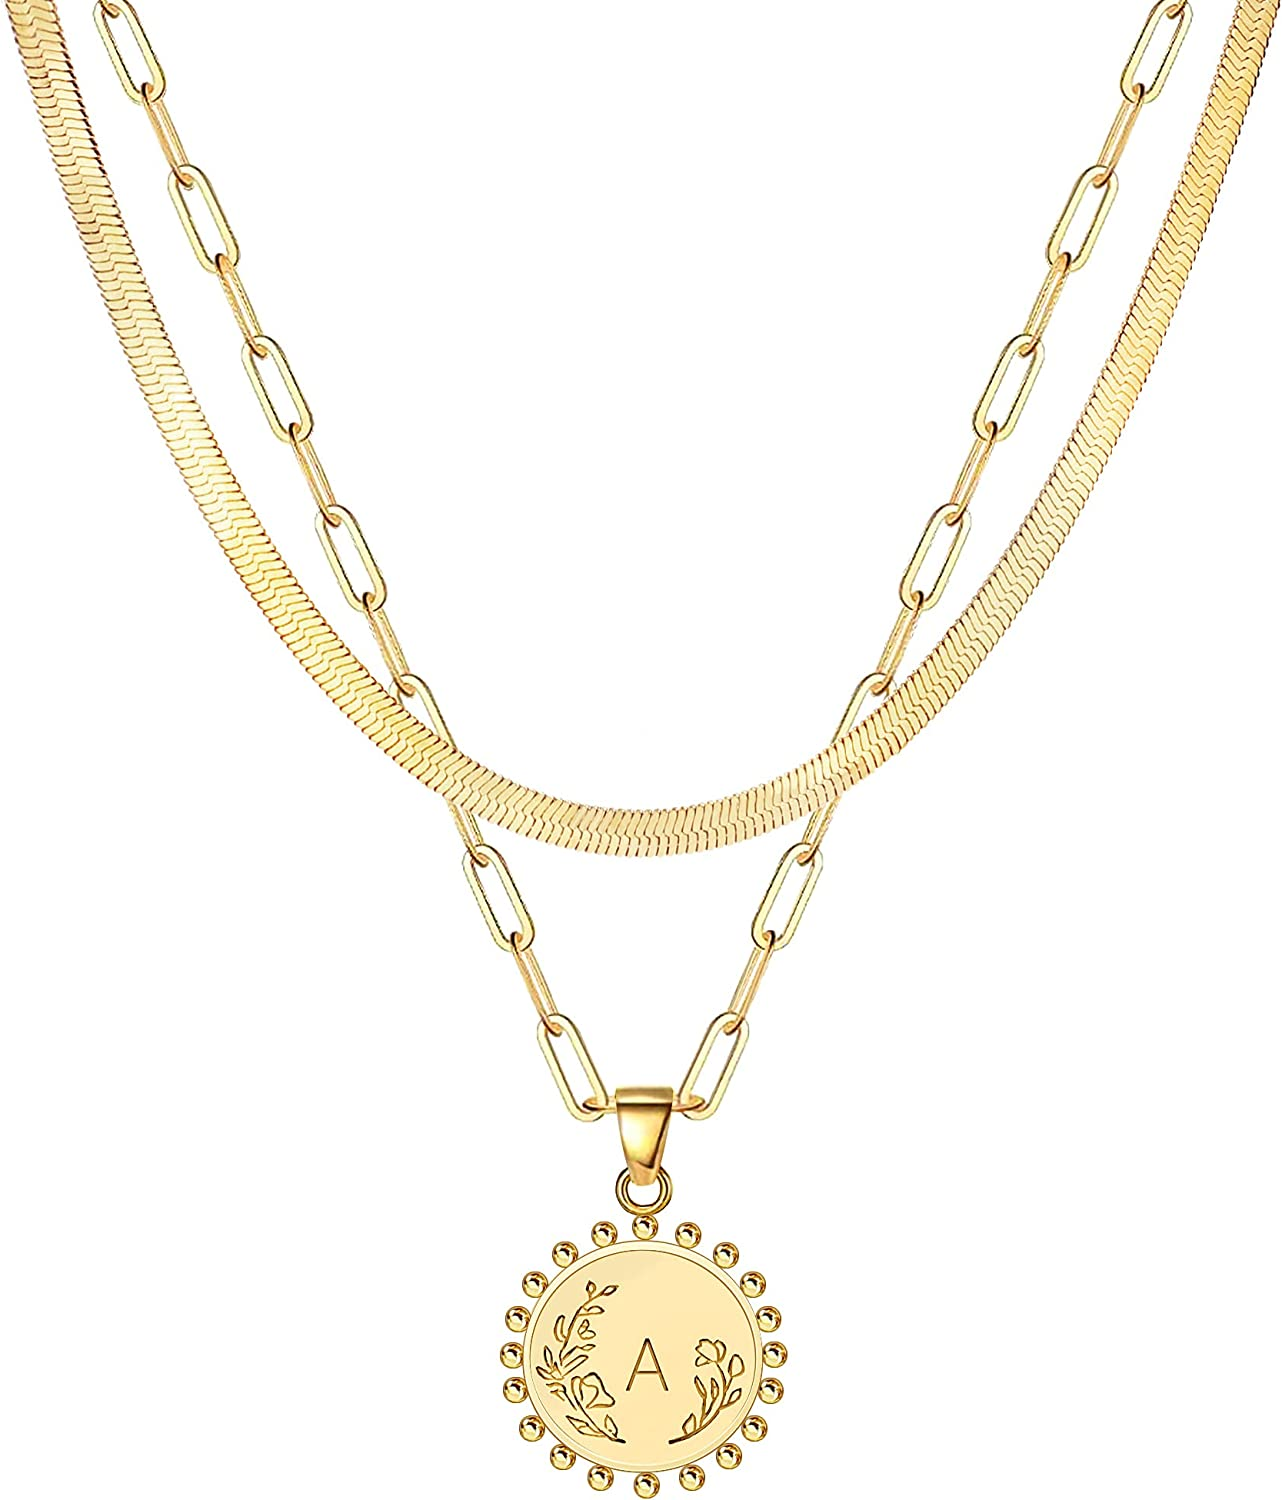 JSJOY Layered Initial Necklaces Discount is also underway for Women Gold Spring new work one after another Paperclip Chain